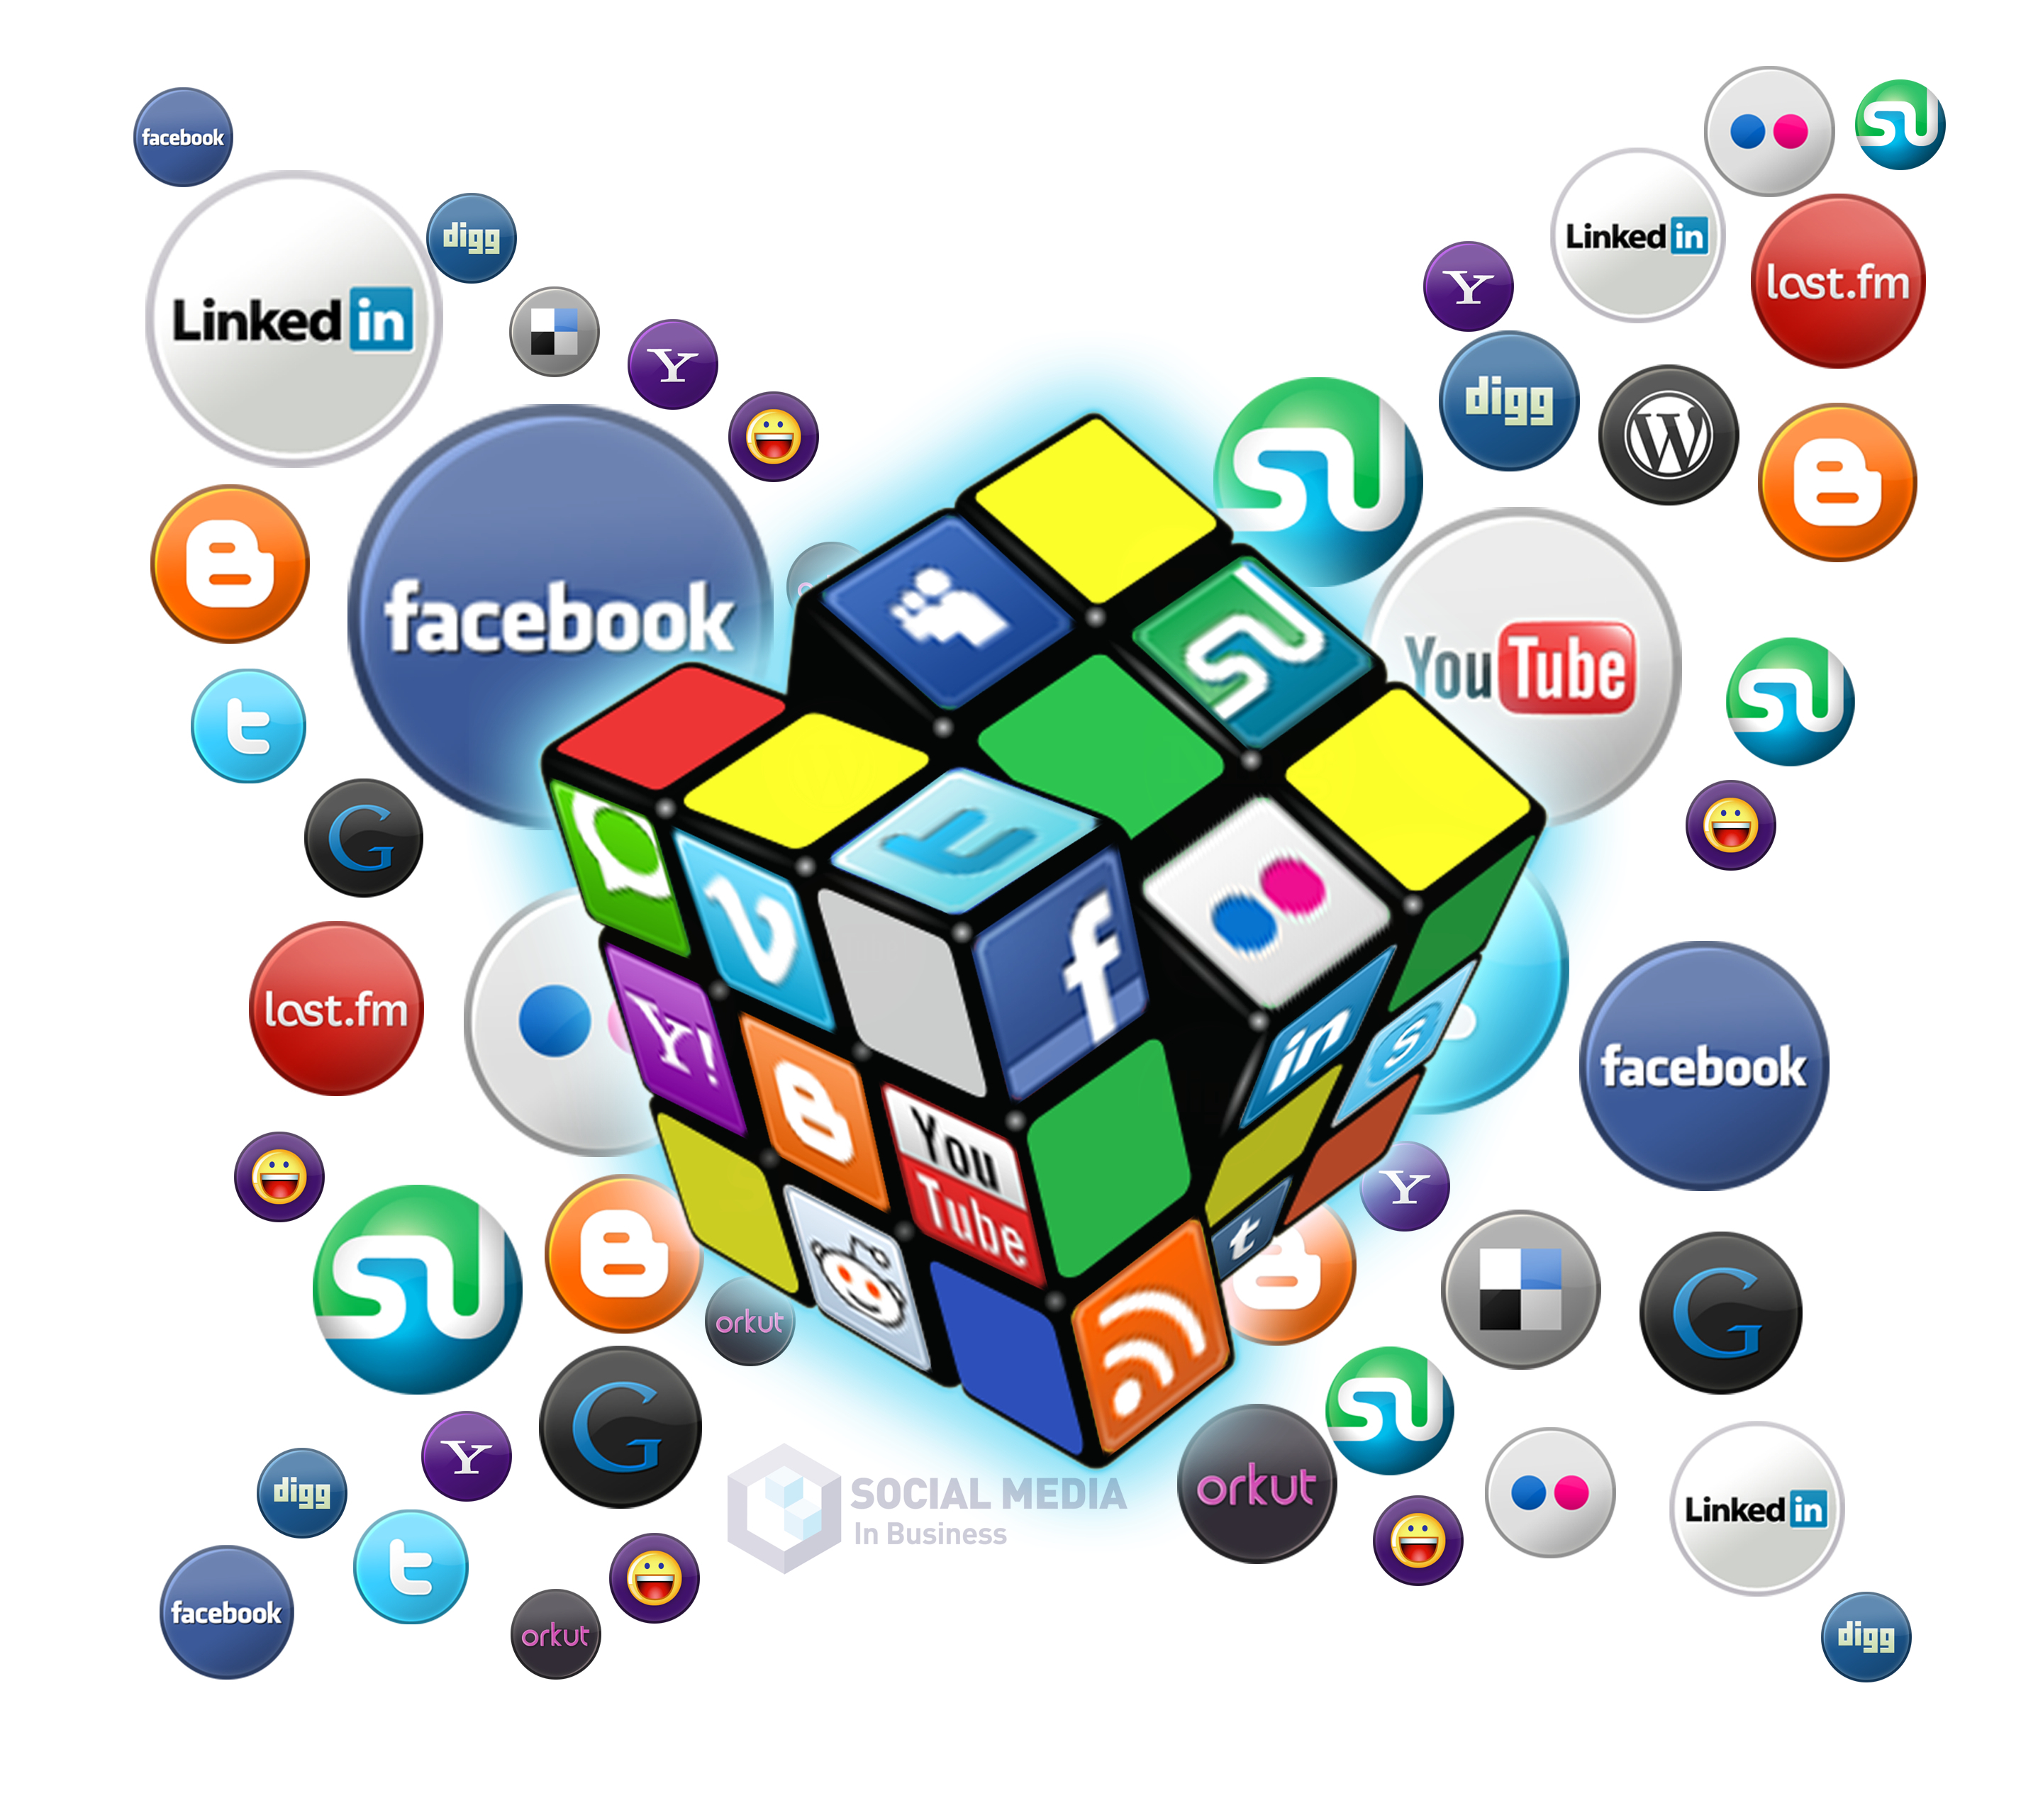 9526739971_75c085e4ca_o 7 Most Influential Social Media Platforms For Bloggers Blog Marketing Social Media